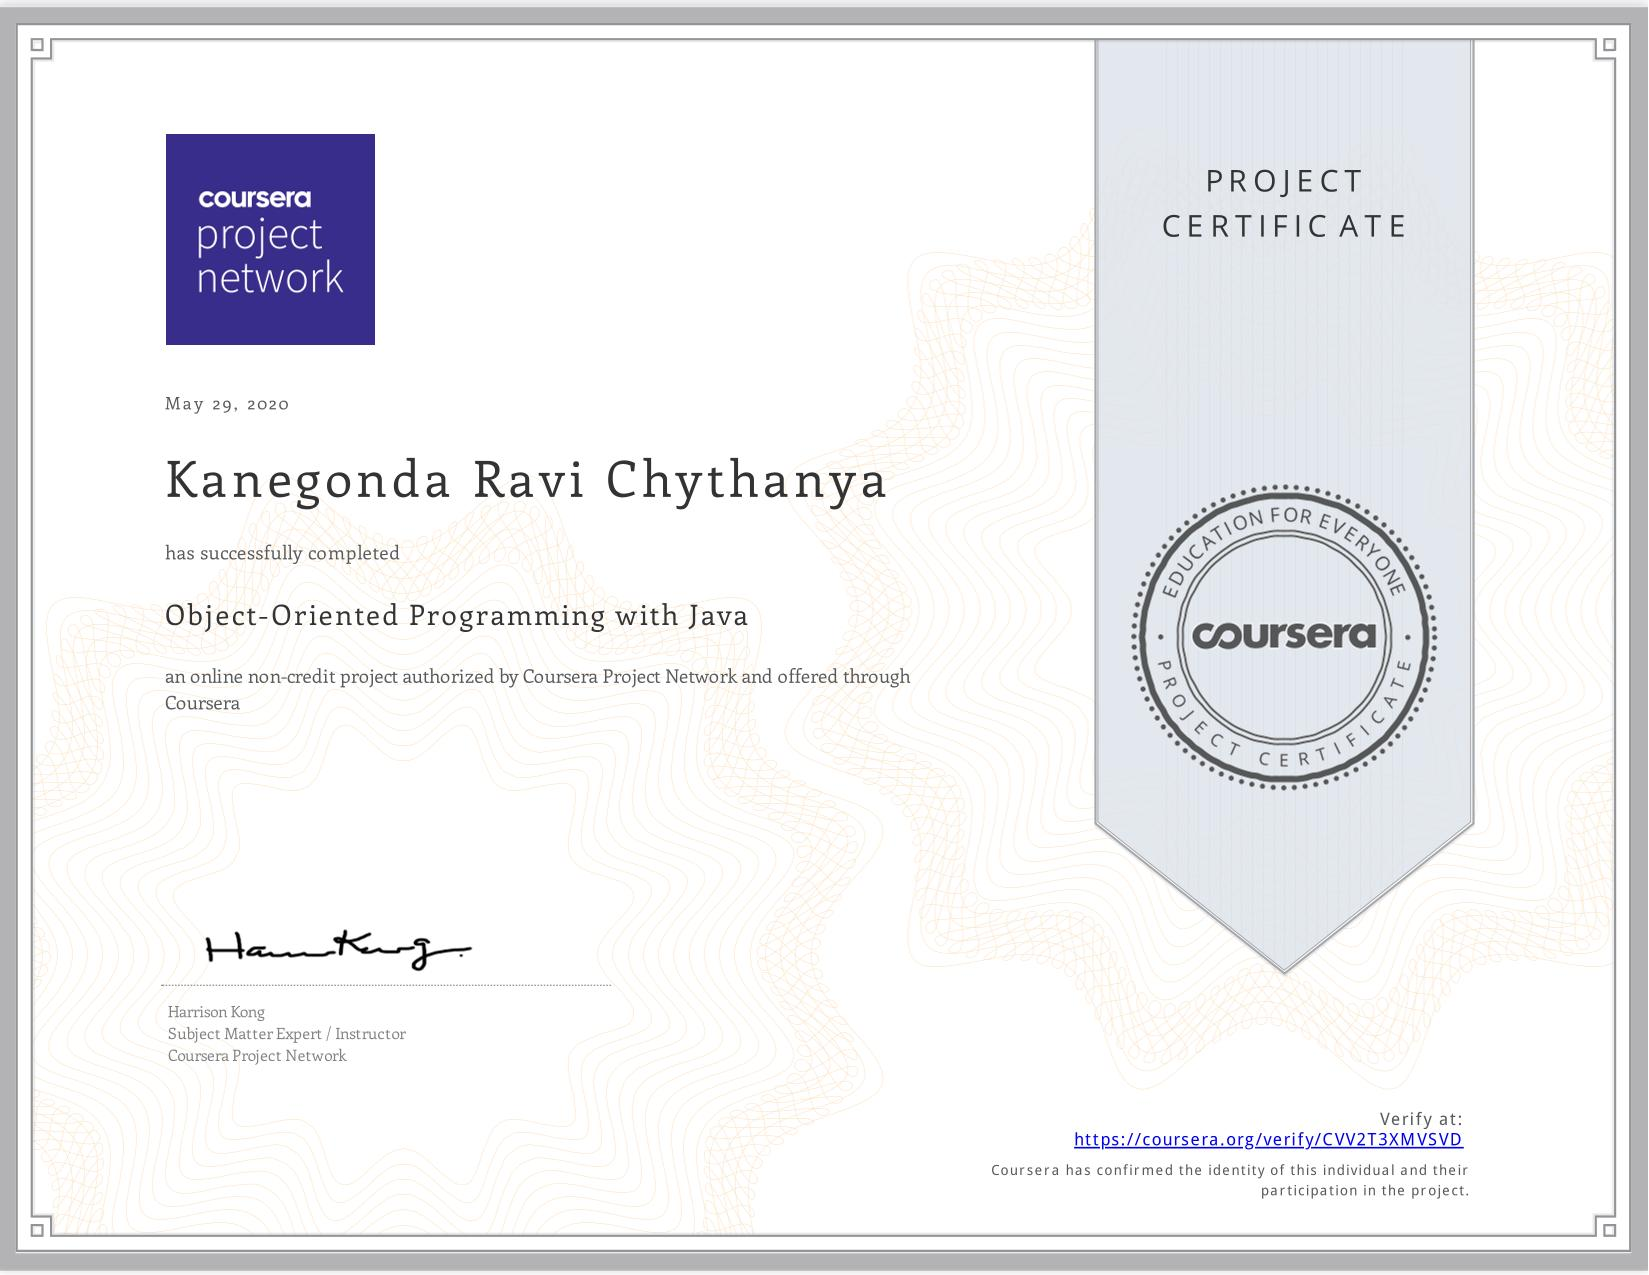 View certificate for Kanegonda Ravi Chythanya, Object-Oriented Programming with Java, an online non-credit course authorized by Coursera Project Network and offered through Coursera